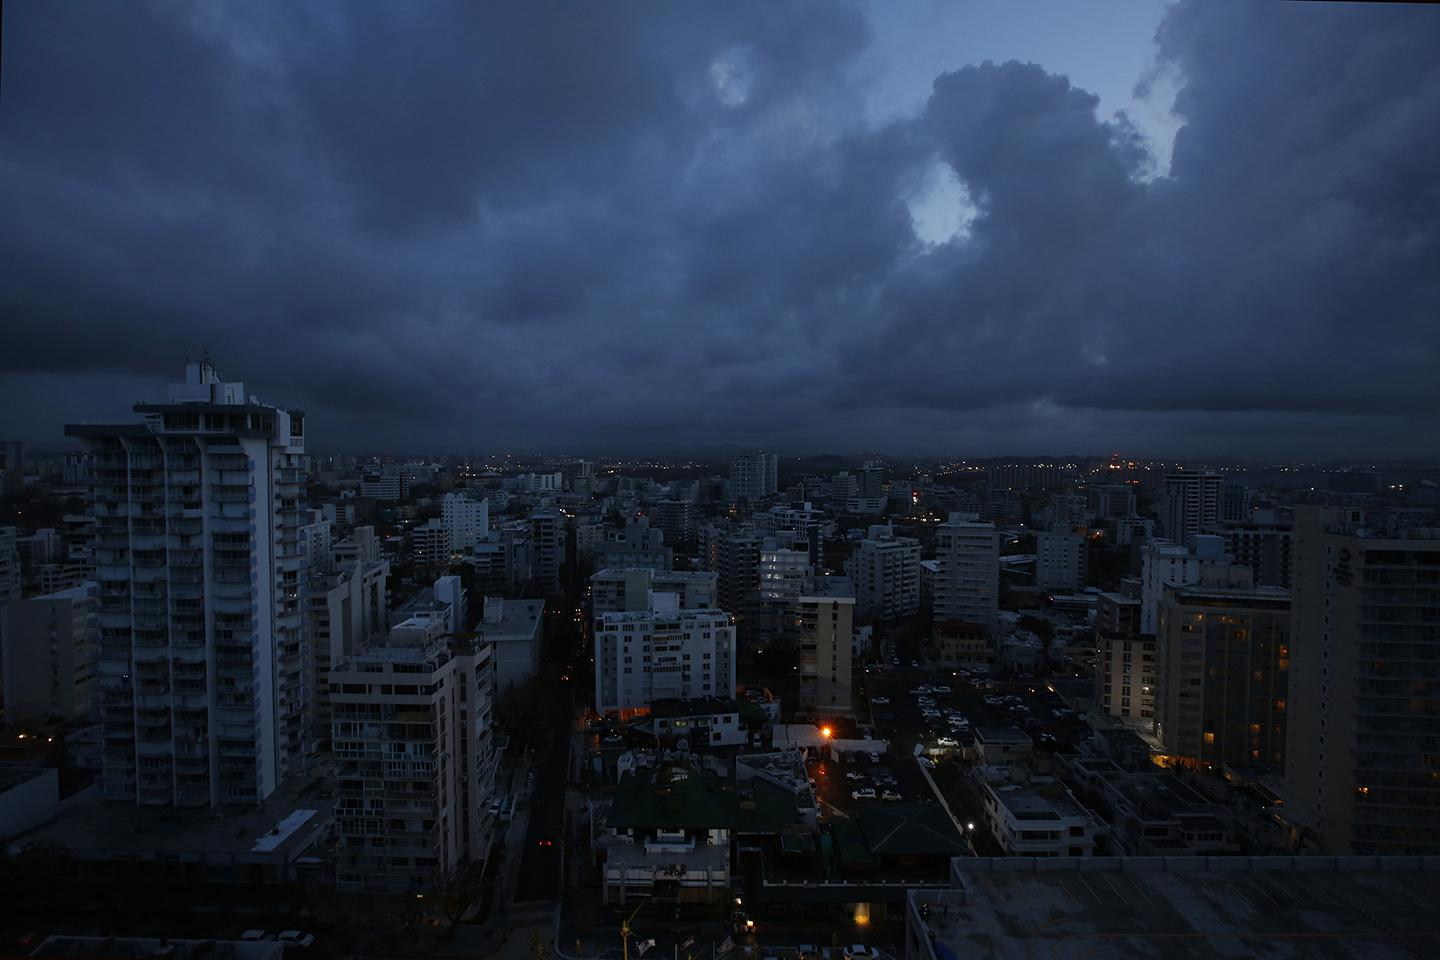 Downtown San Juan is cast in darkness on September 28, 2017. Any building with light was running off a generator, as there was no public electricity working on the whole island.